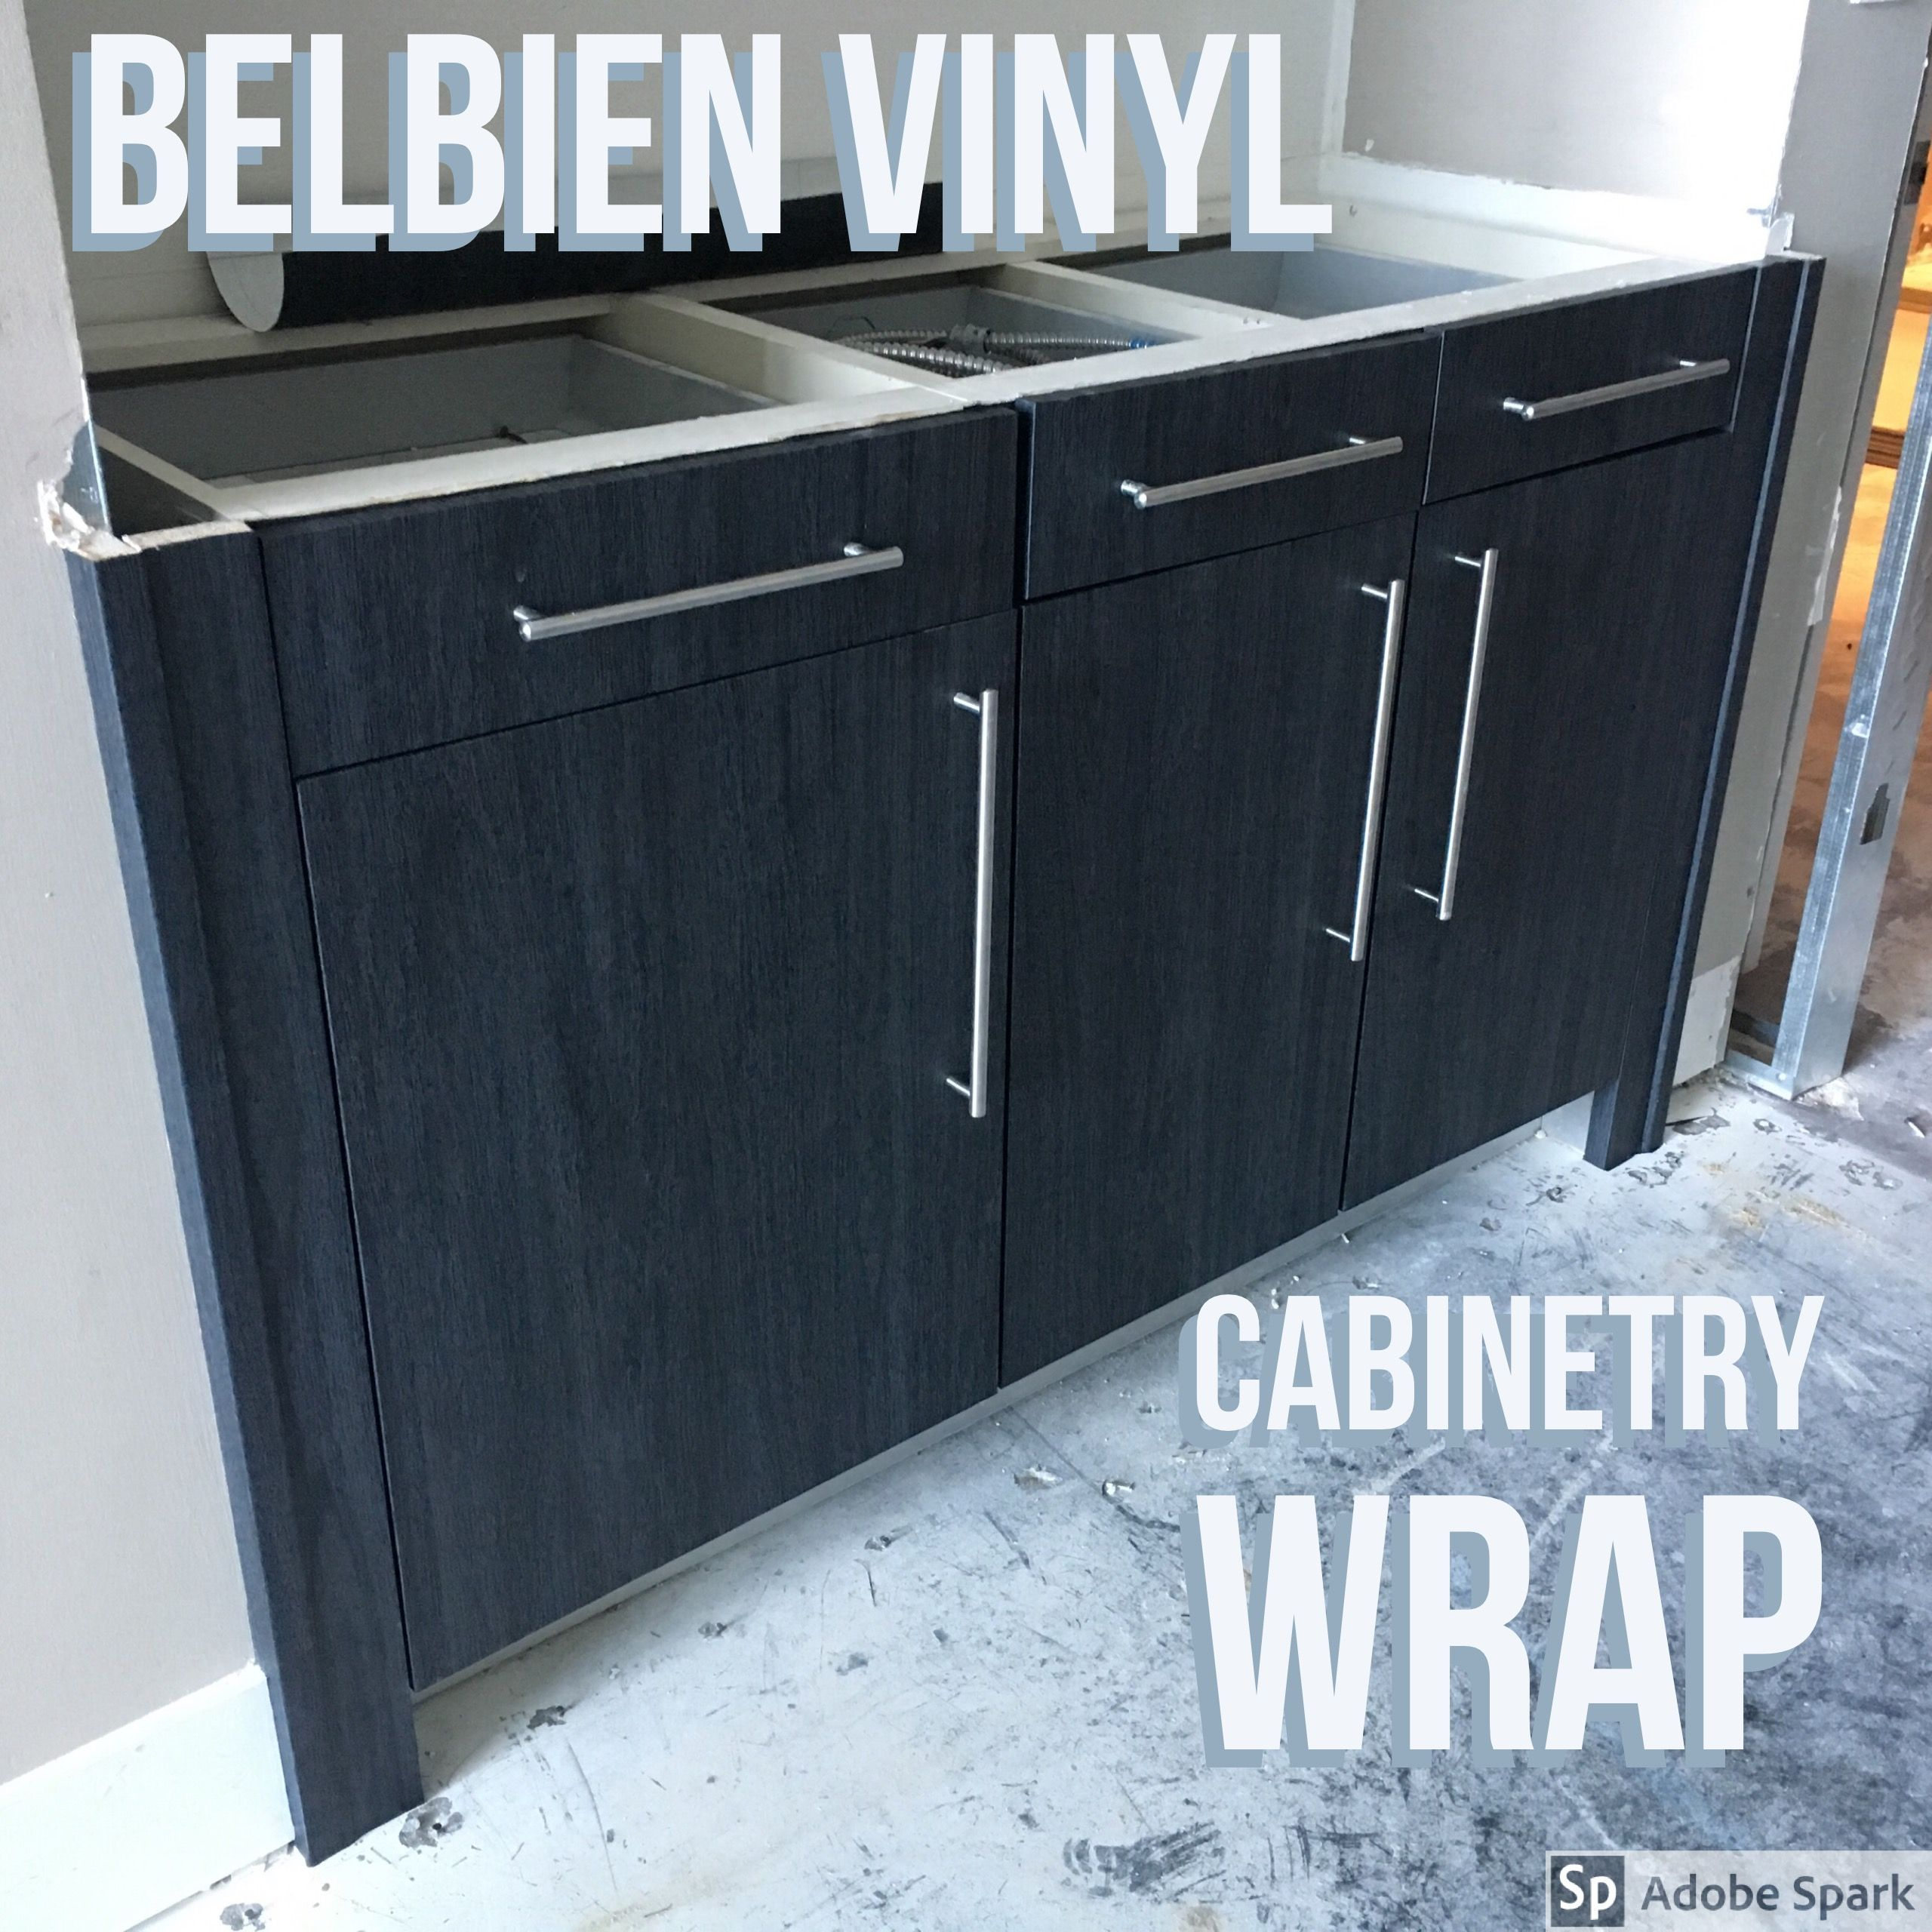 Bathroom Cabinetry Wrap We Used Belbien Vinyl Www Rmwrapsstore Com Randy 208 6 Custom Bathroom Cabinets Building Kitchen Cabinets Bathroom Vanities For Sale